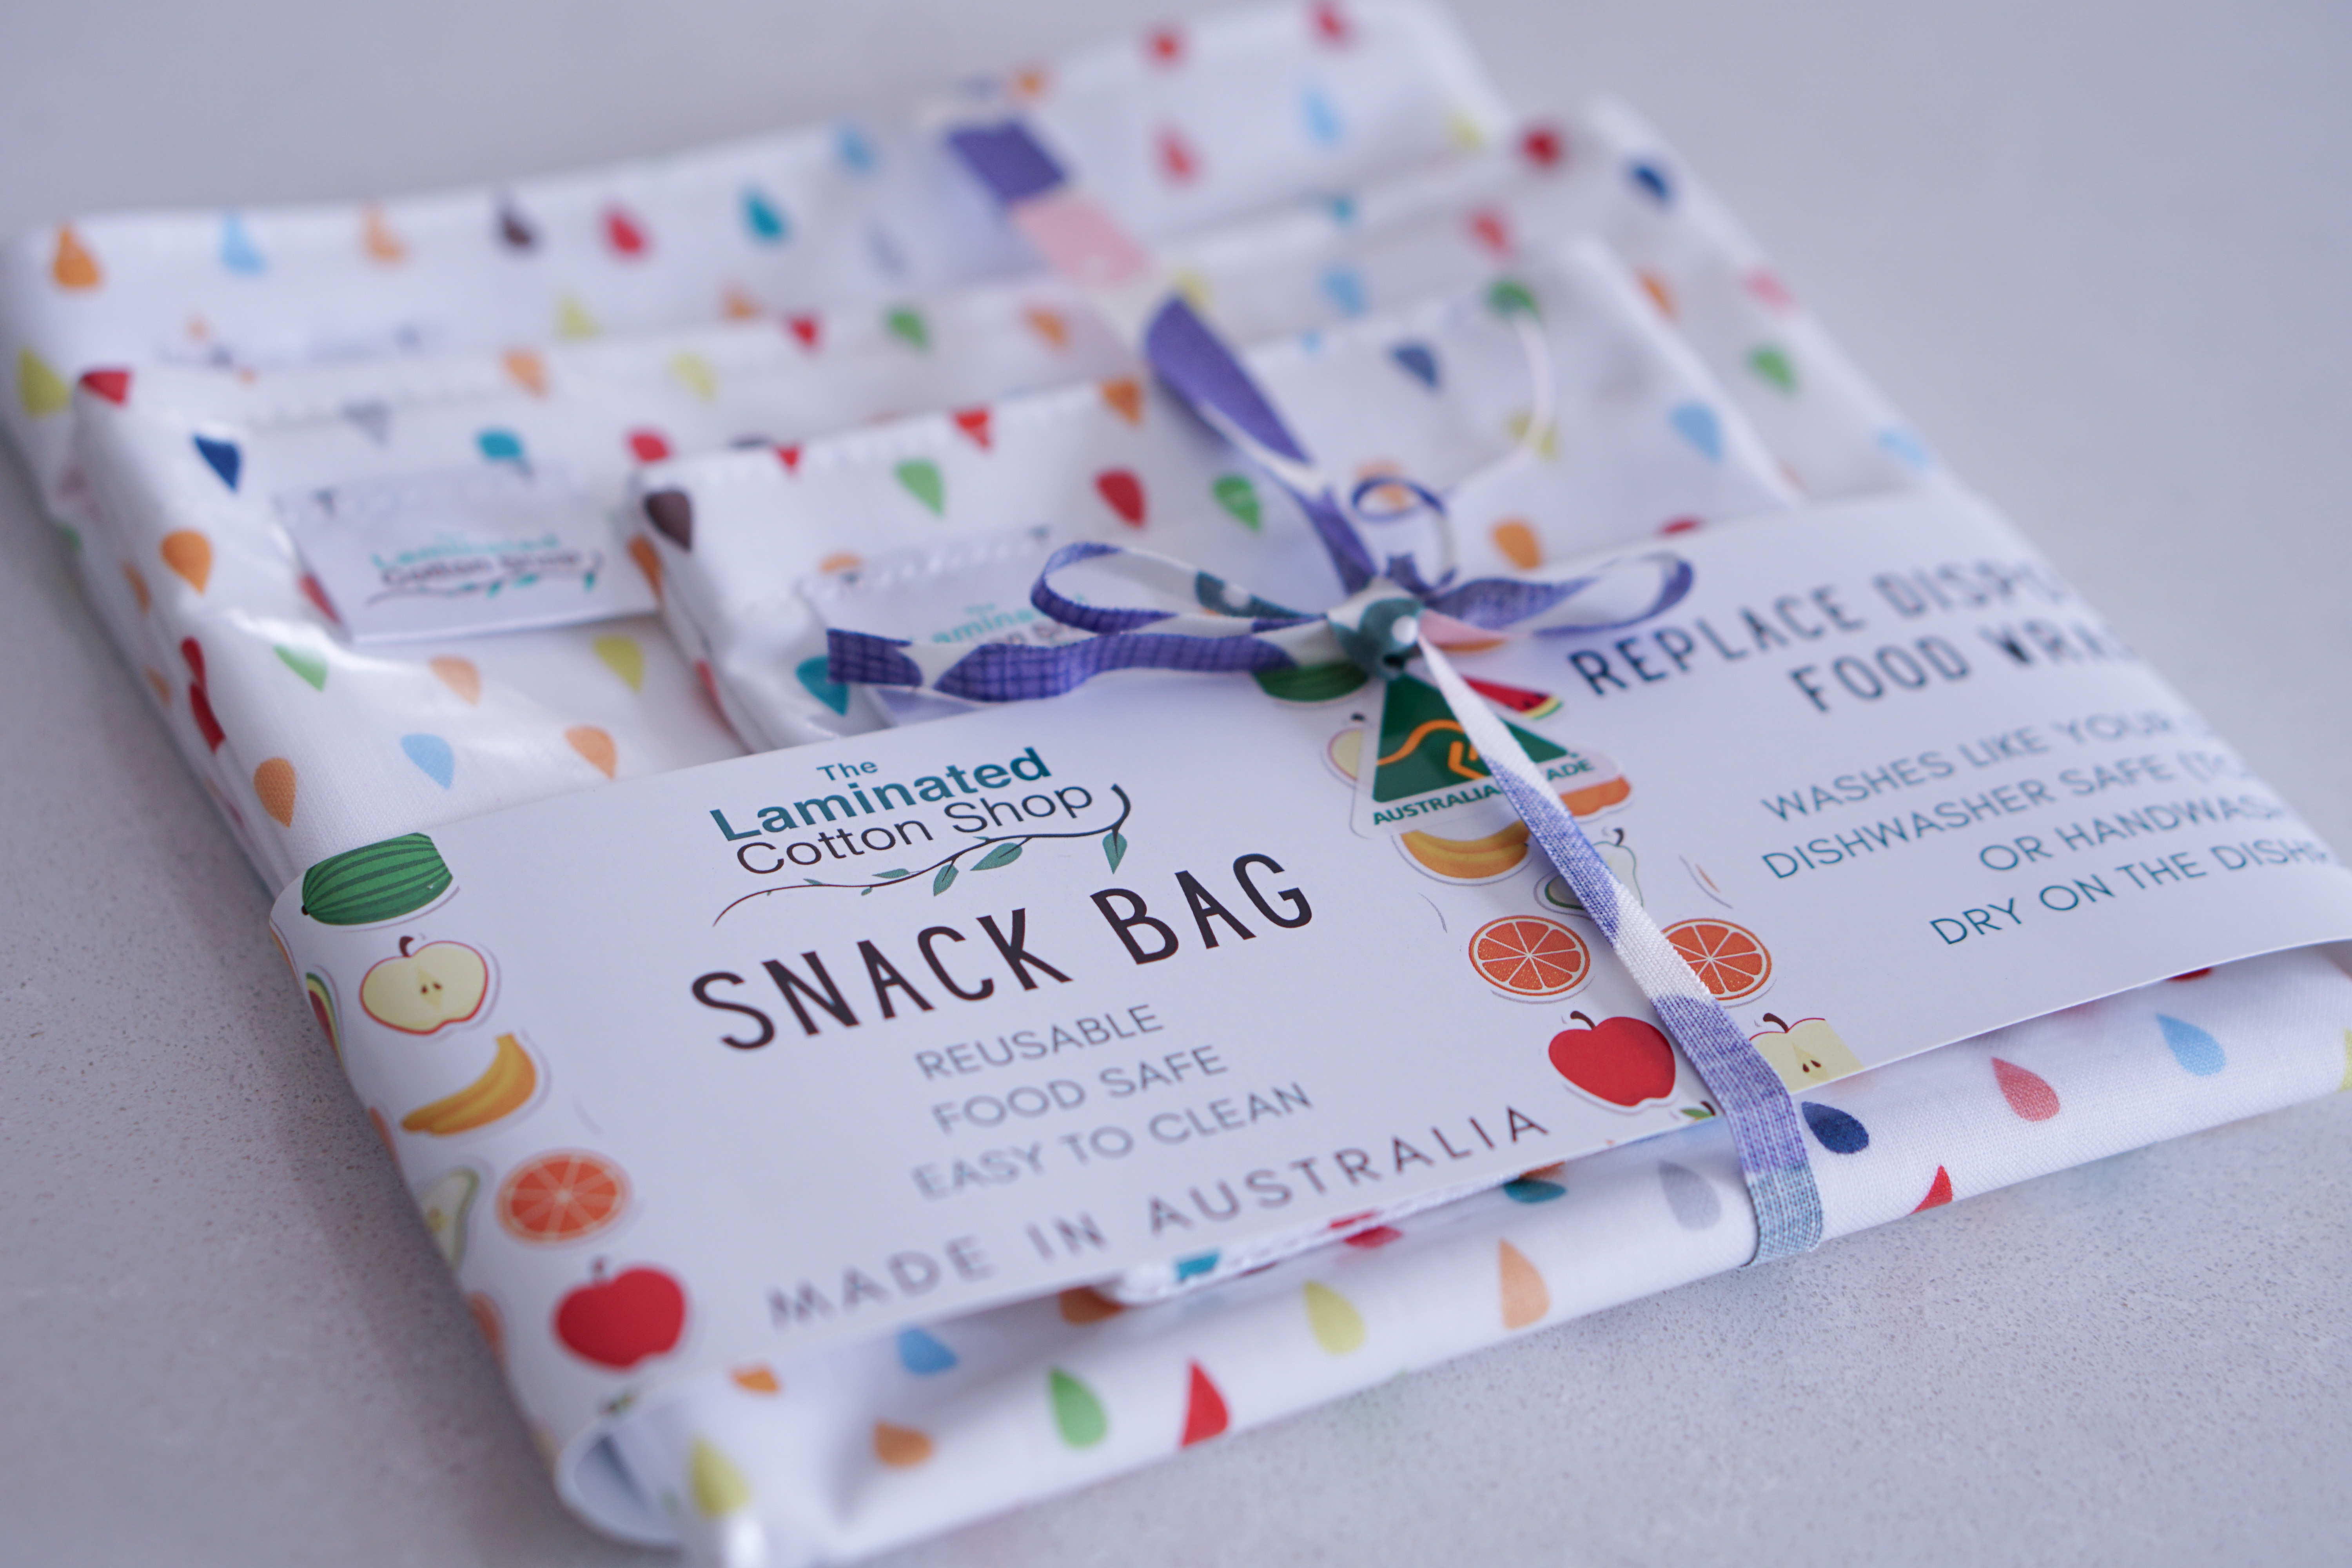 Image of The Laminated Cotton Shop Snack Bag Set tied together with product label